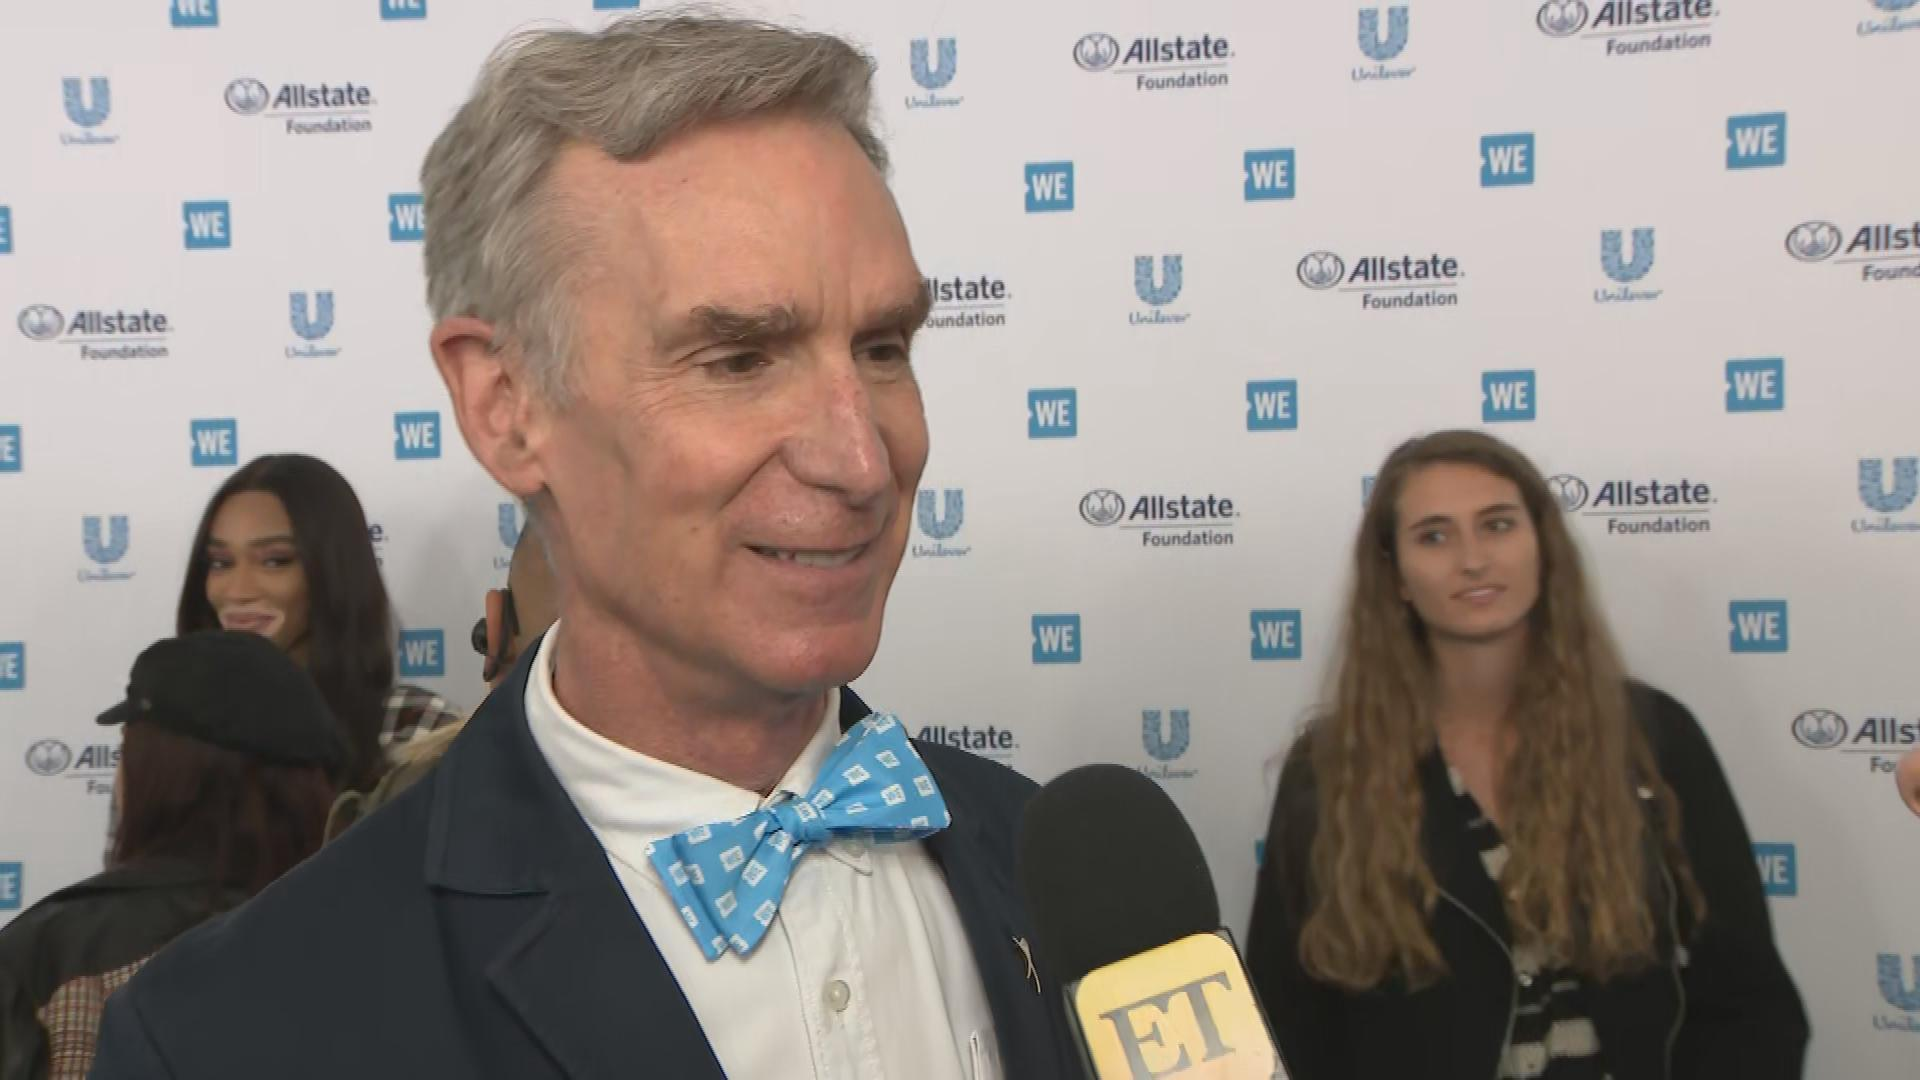 Bill Nye Jokes Fans Should 'Stay Tuned' for Future Project With North West (Exclusive)